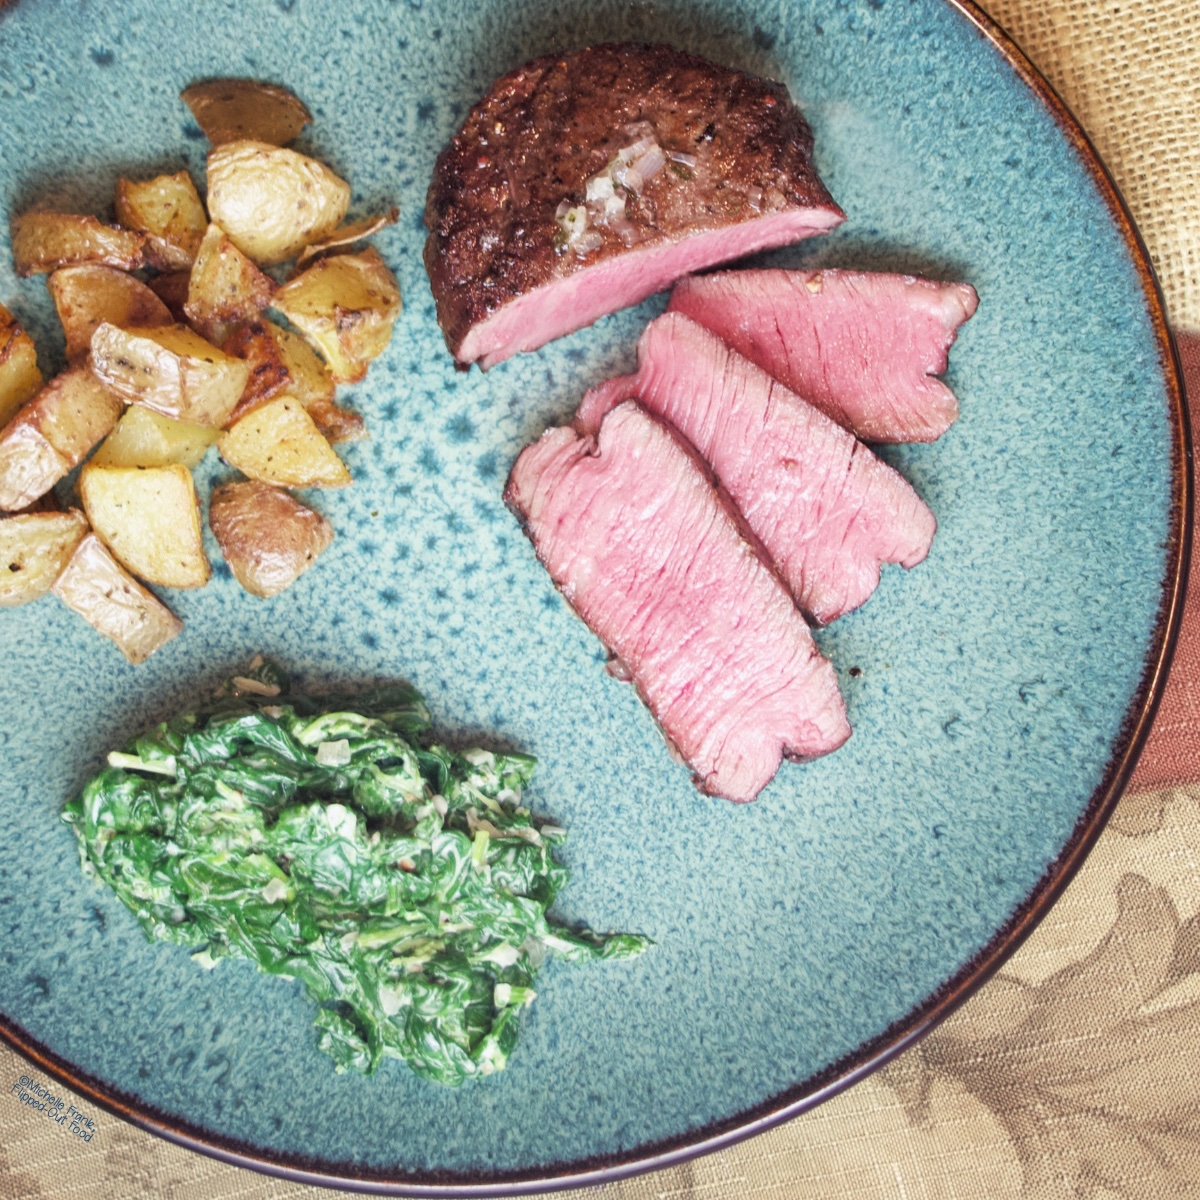 Reverse-Sear Fliet Mignon Steak on a blue plate with roasted potatoes and creamed spinach. Three slices have been cut from the juicy filet, which is cooked medium rare, and are fanned out on the plate.